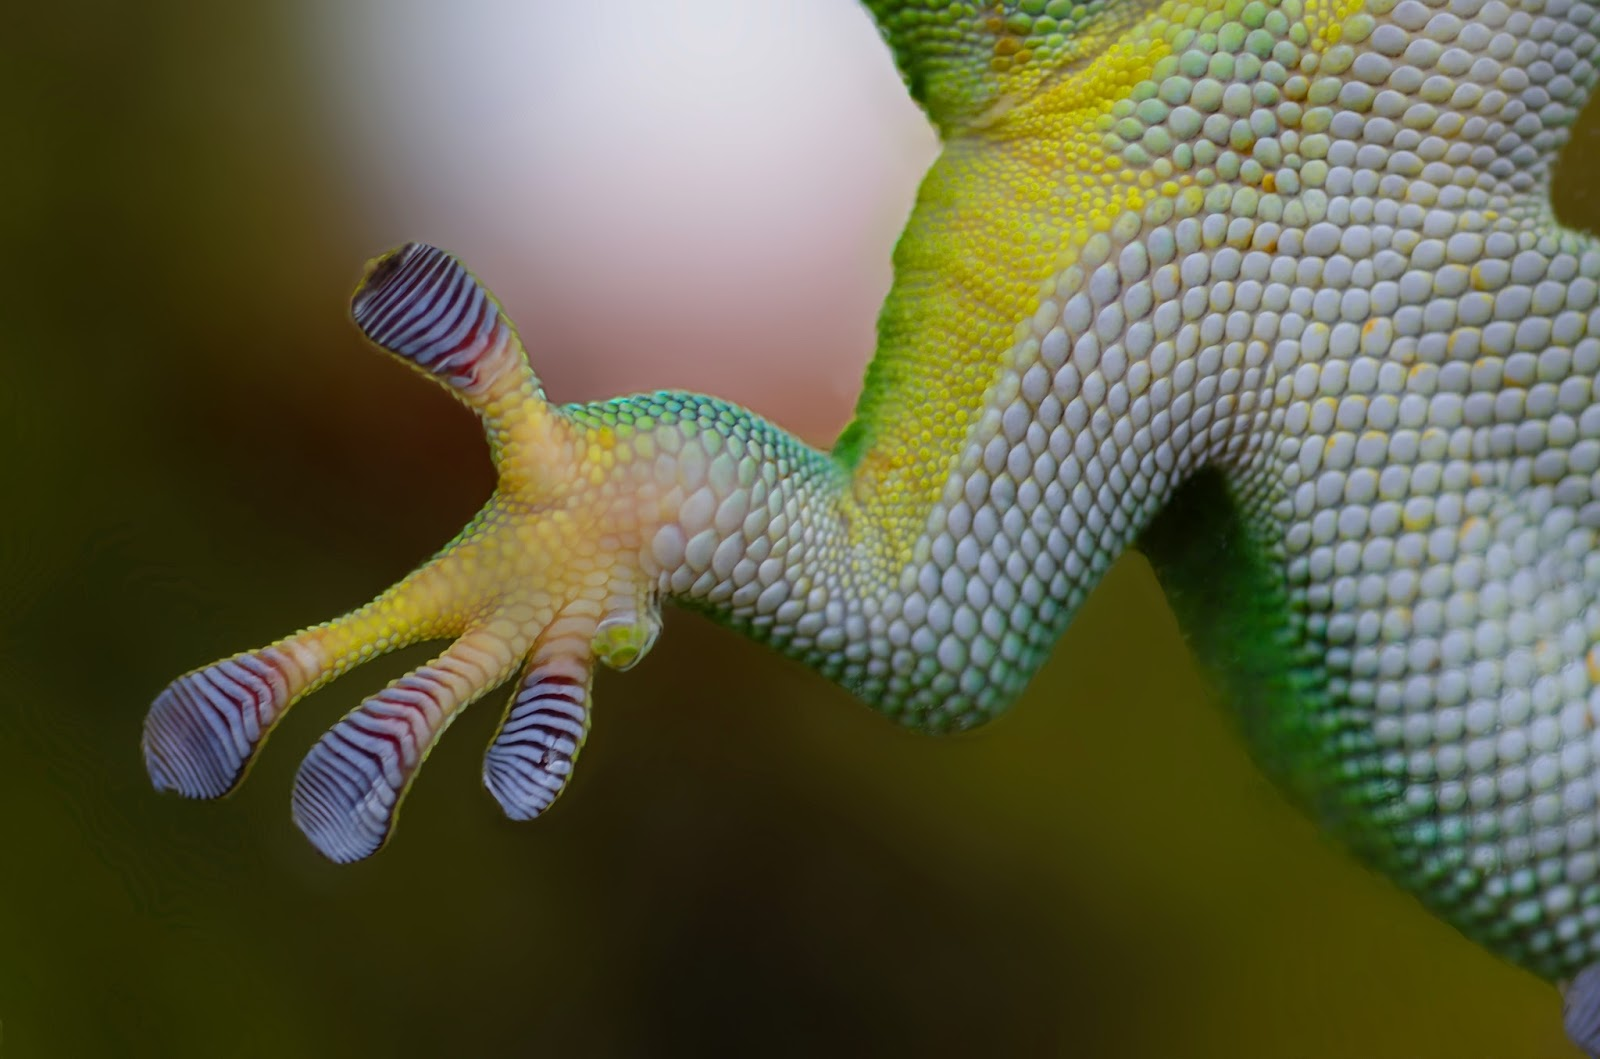 Up close photo of geckos sticky feet.